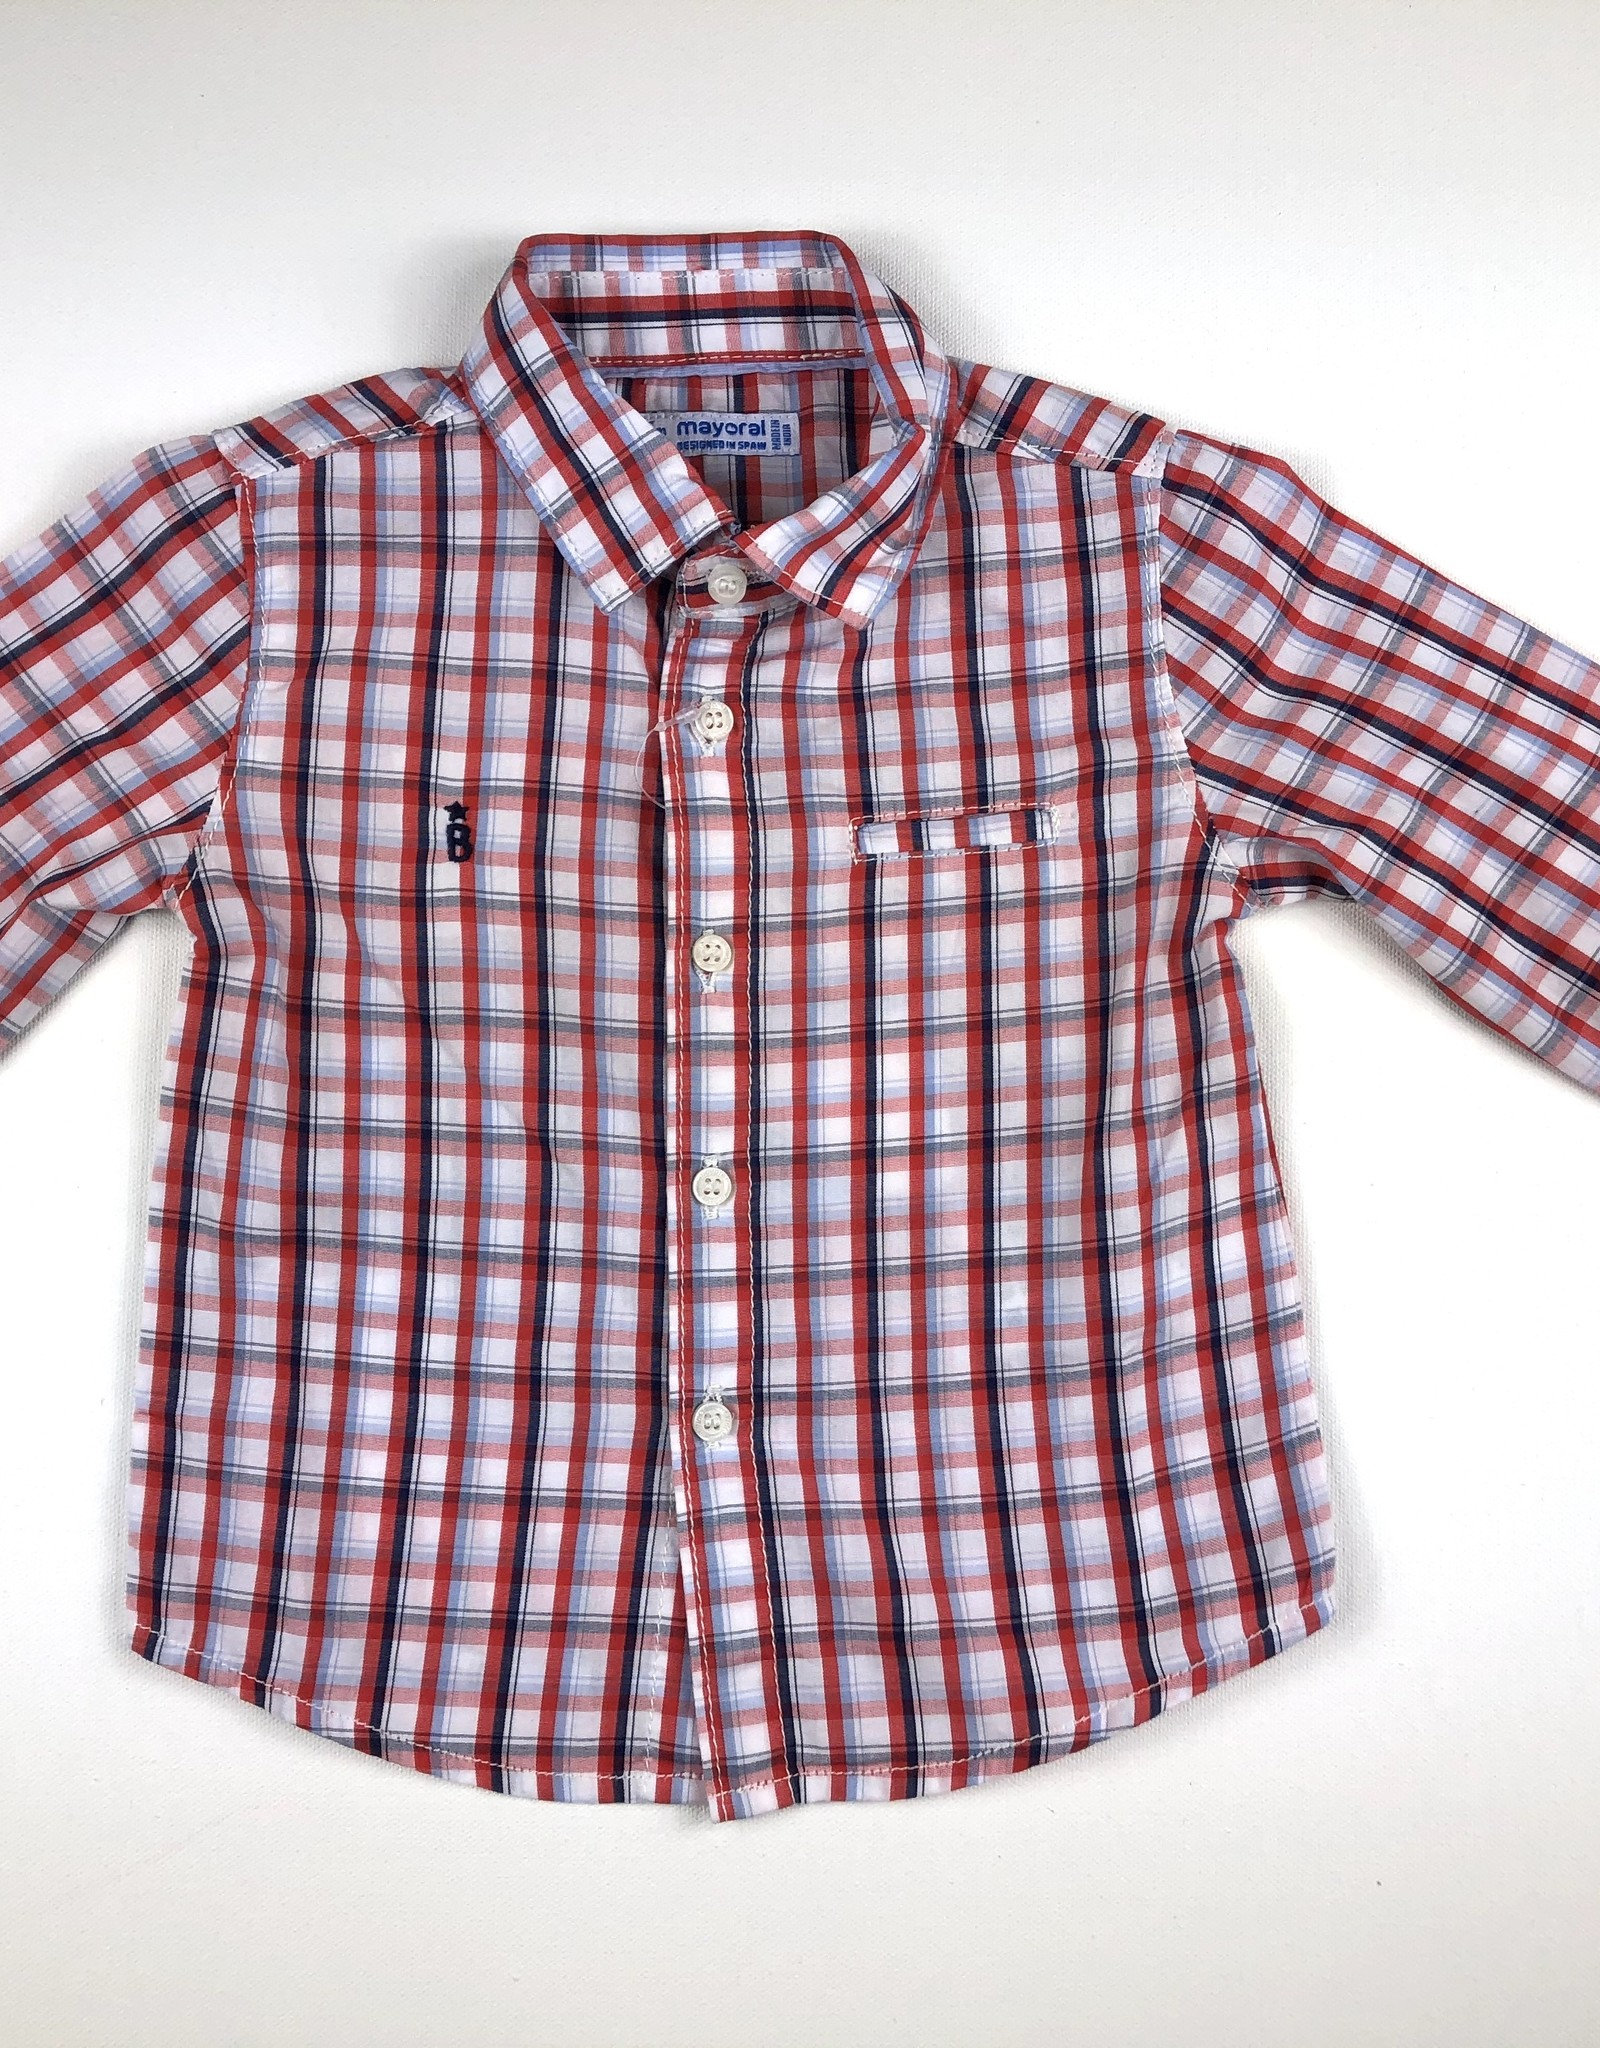 Mayoral Plaid Oxford